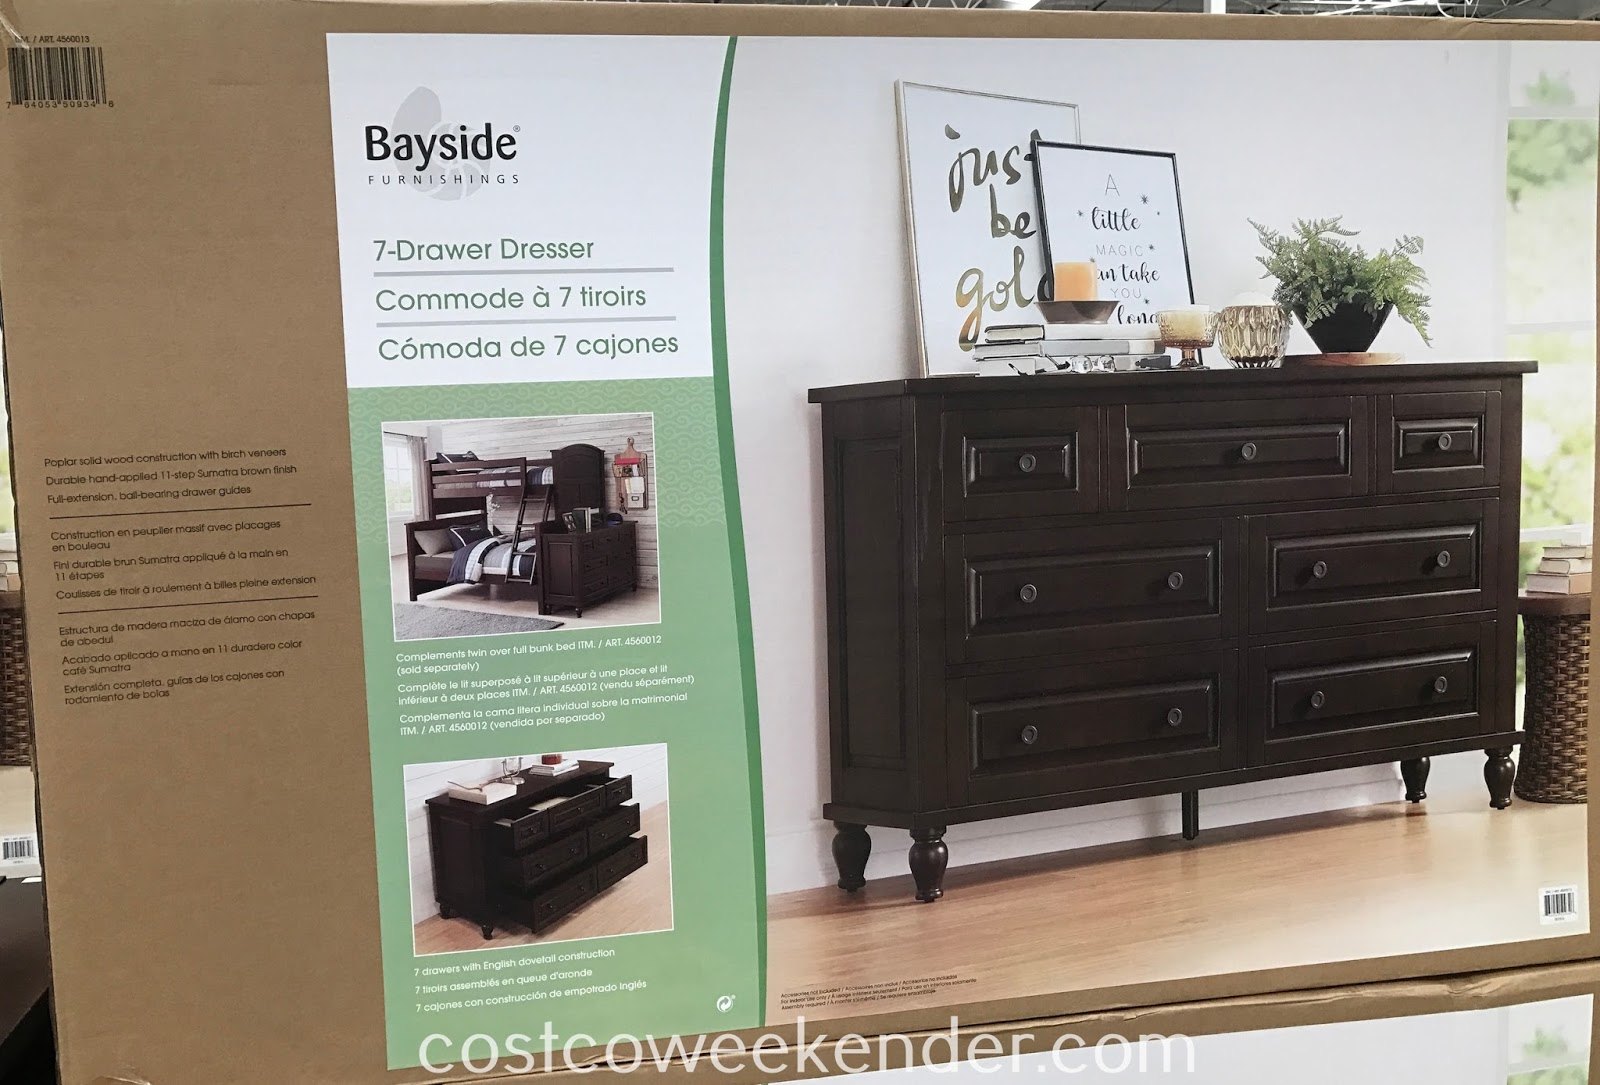 Costco 4560013 - Bayside Furnishings 7-Drawer Dresser: great for any bedroom